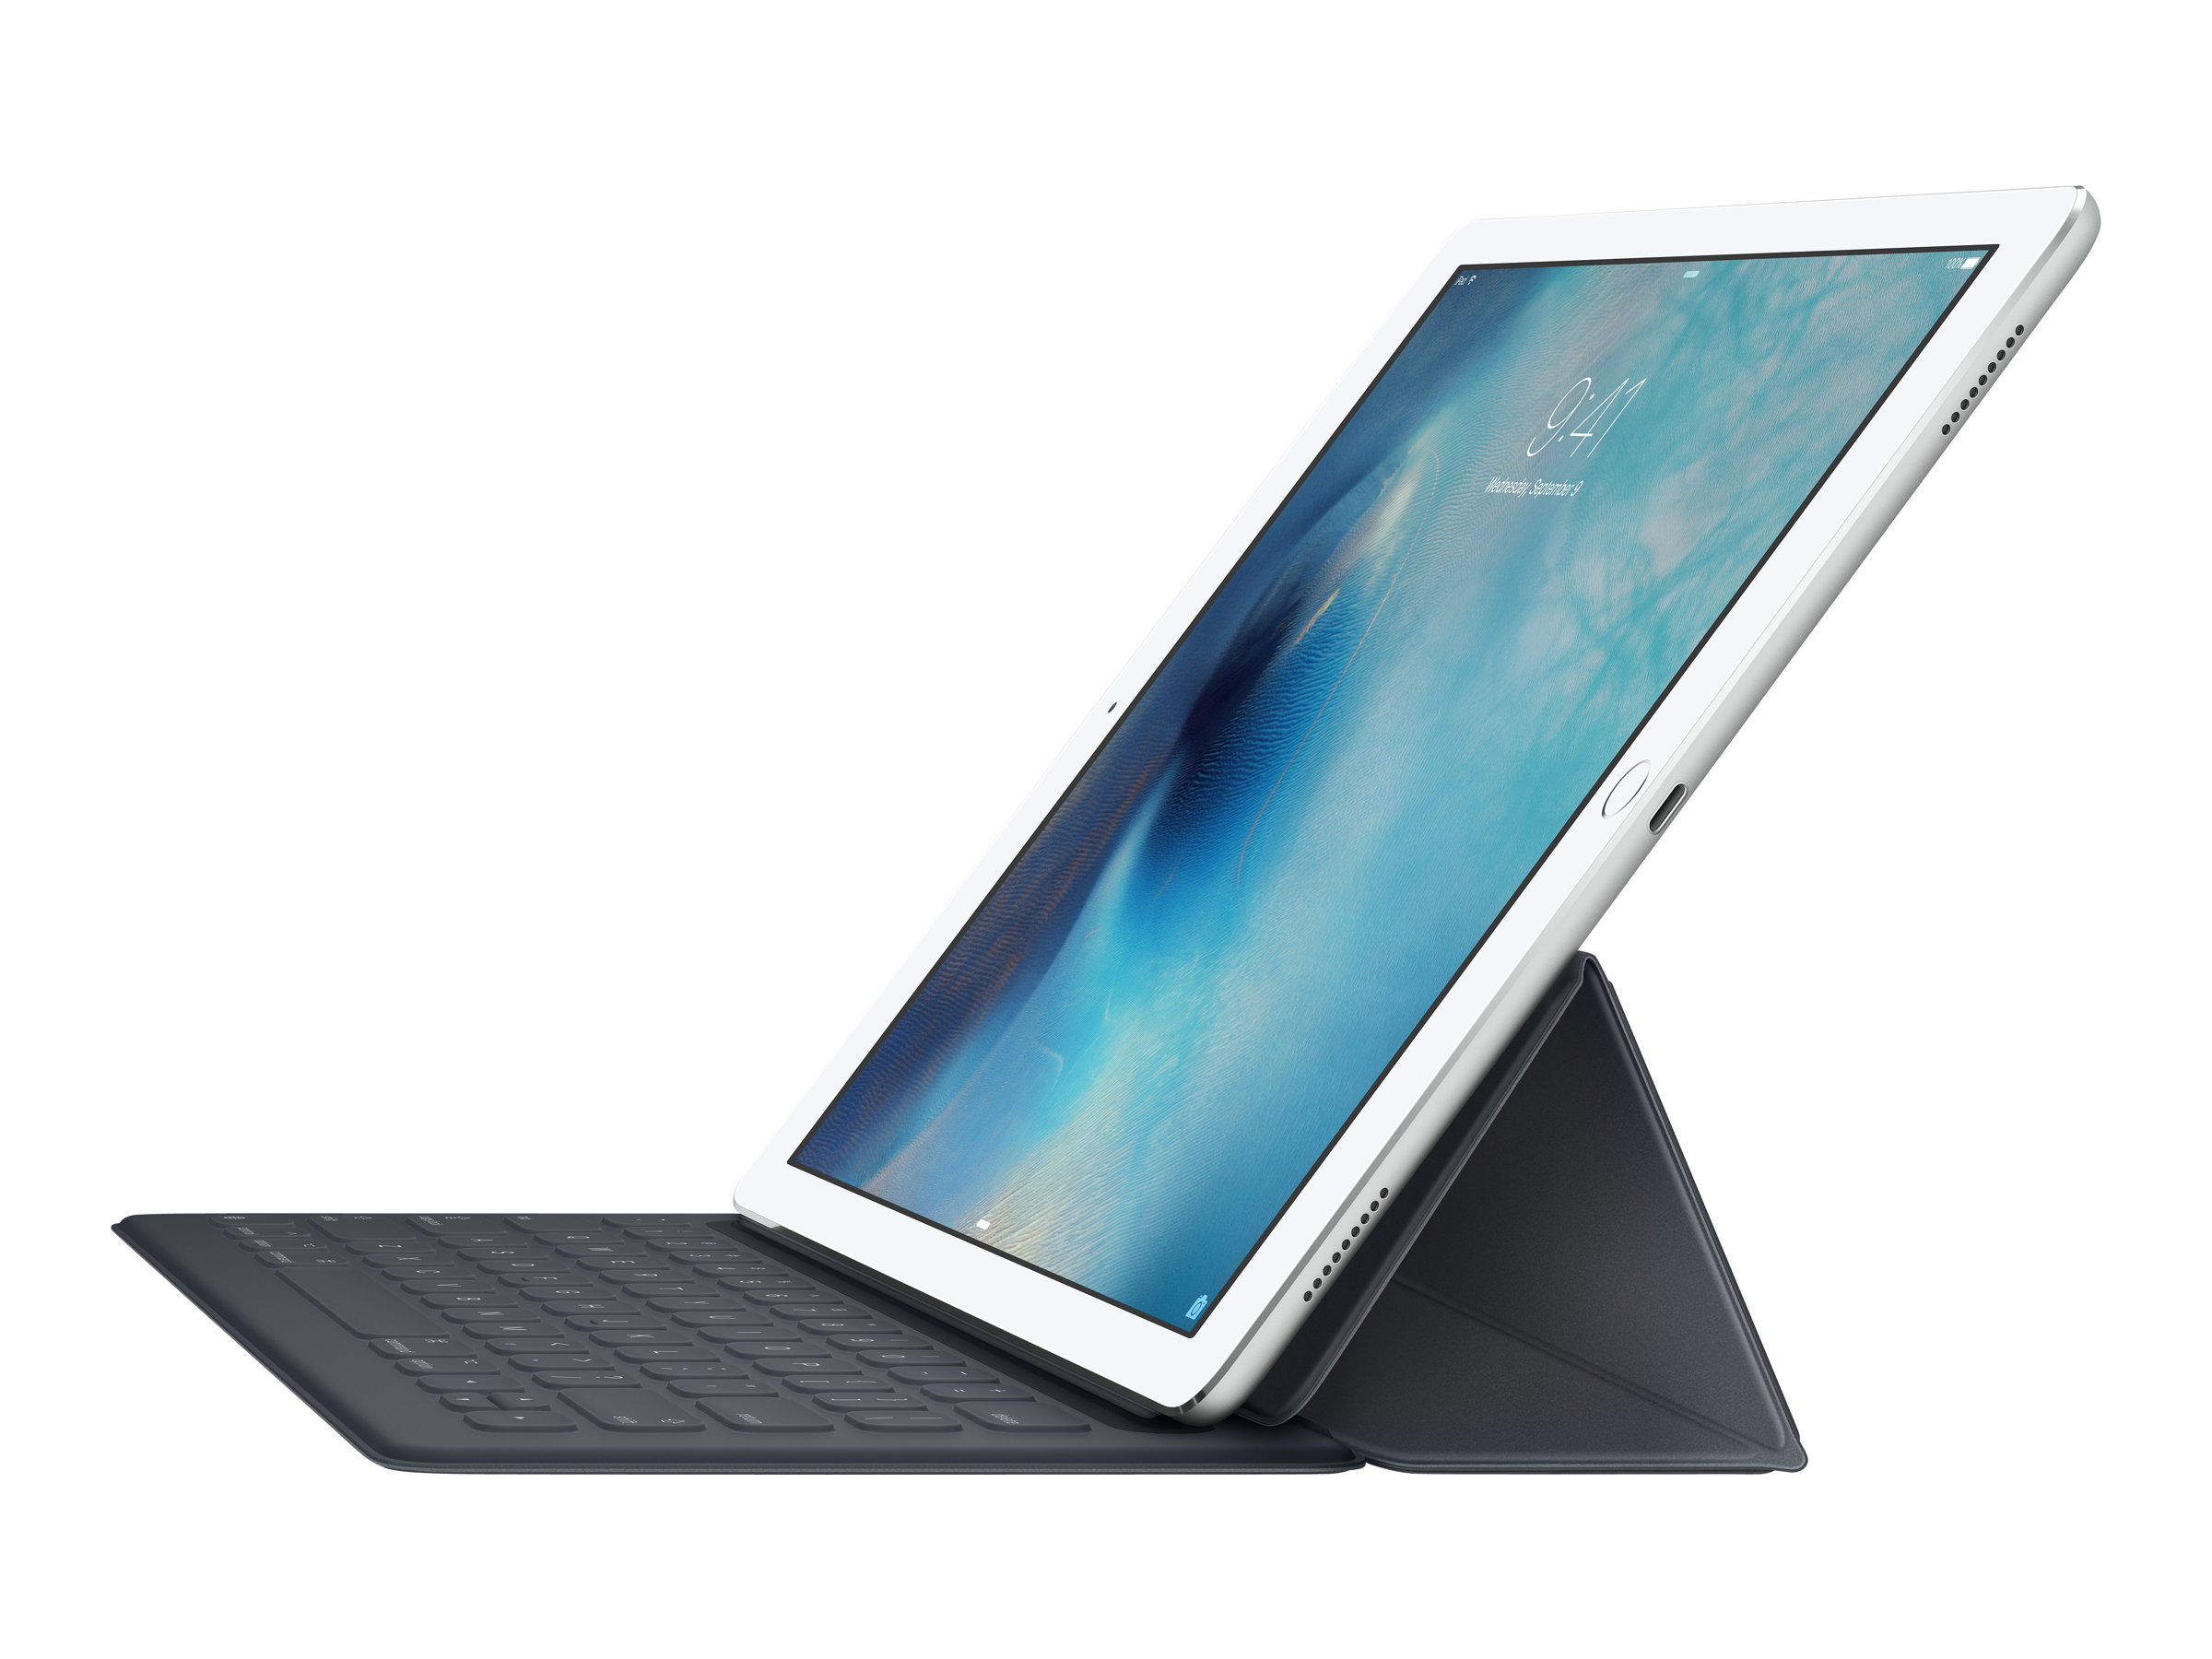 Apple Smart - Tastatur und Foliohülle - Apple Smart connector - Deutsch - für 12.9-inch iPad Pro